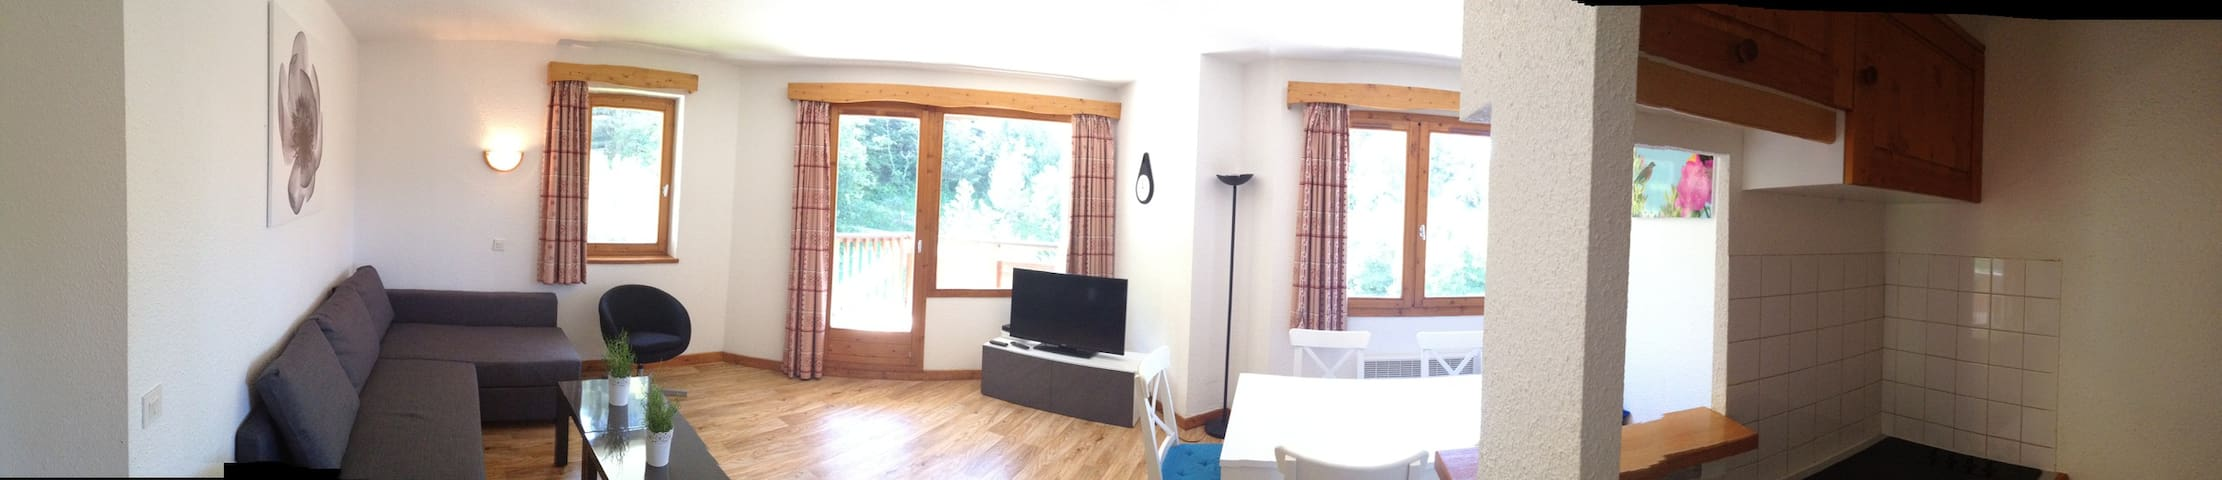 1 Bed Apart. Ski In-Out, Sleeps 5 - La Tania - Apartment